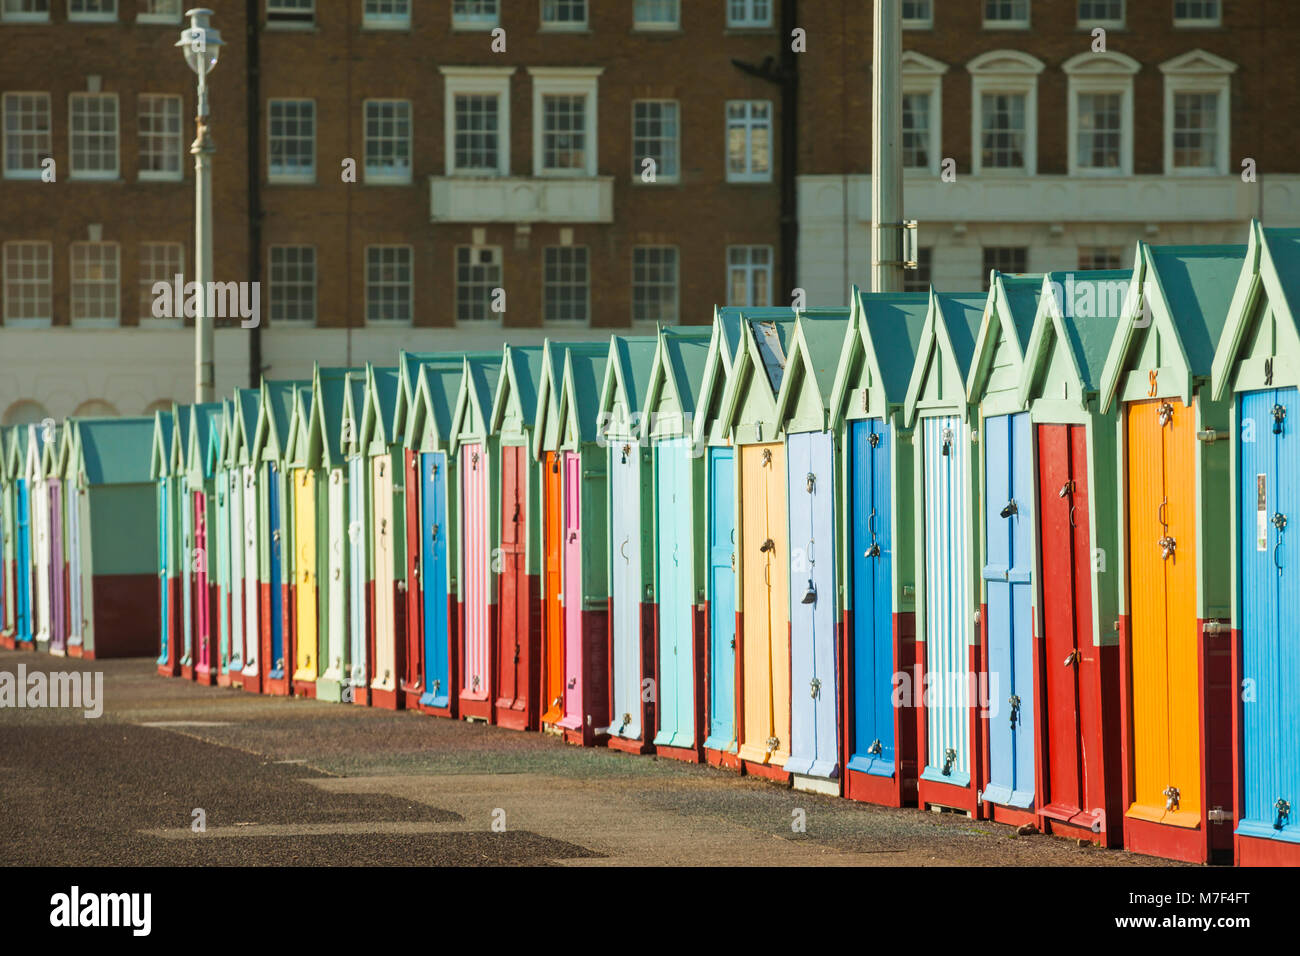 Beach huts on Brighton seafront, England. - Stock Image